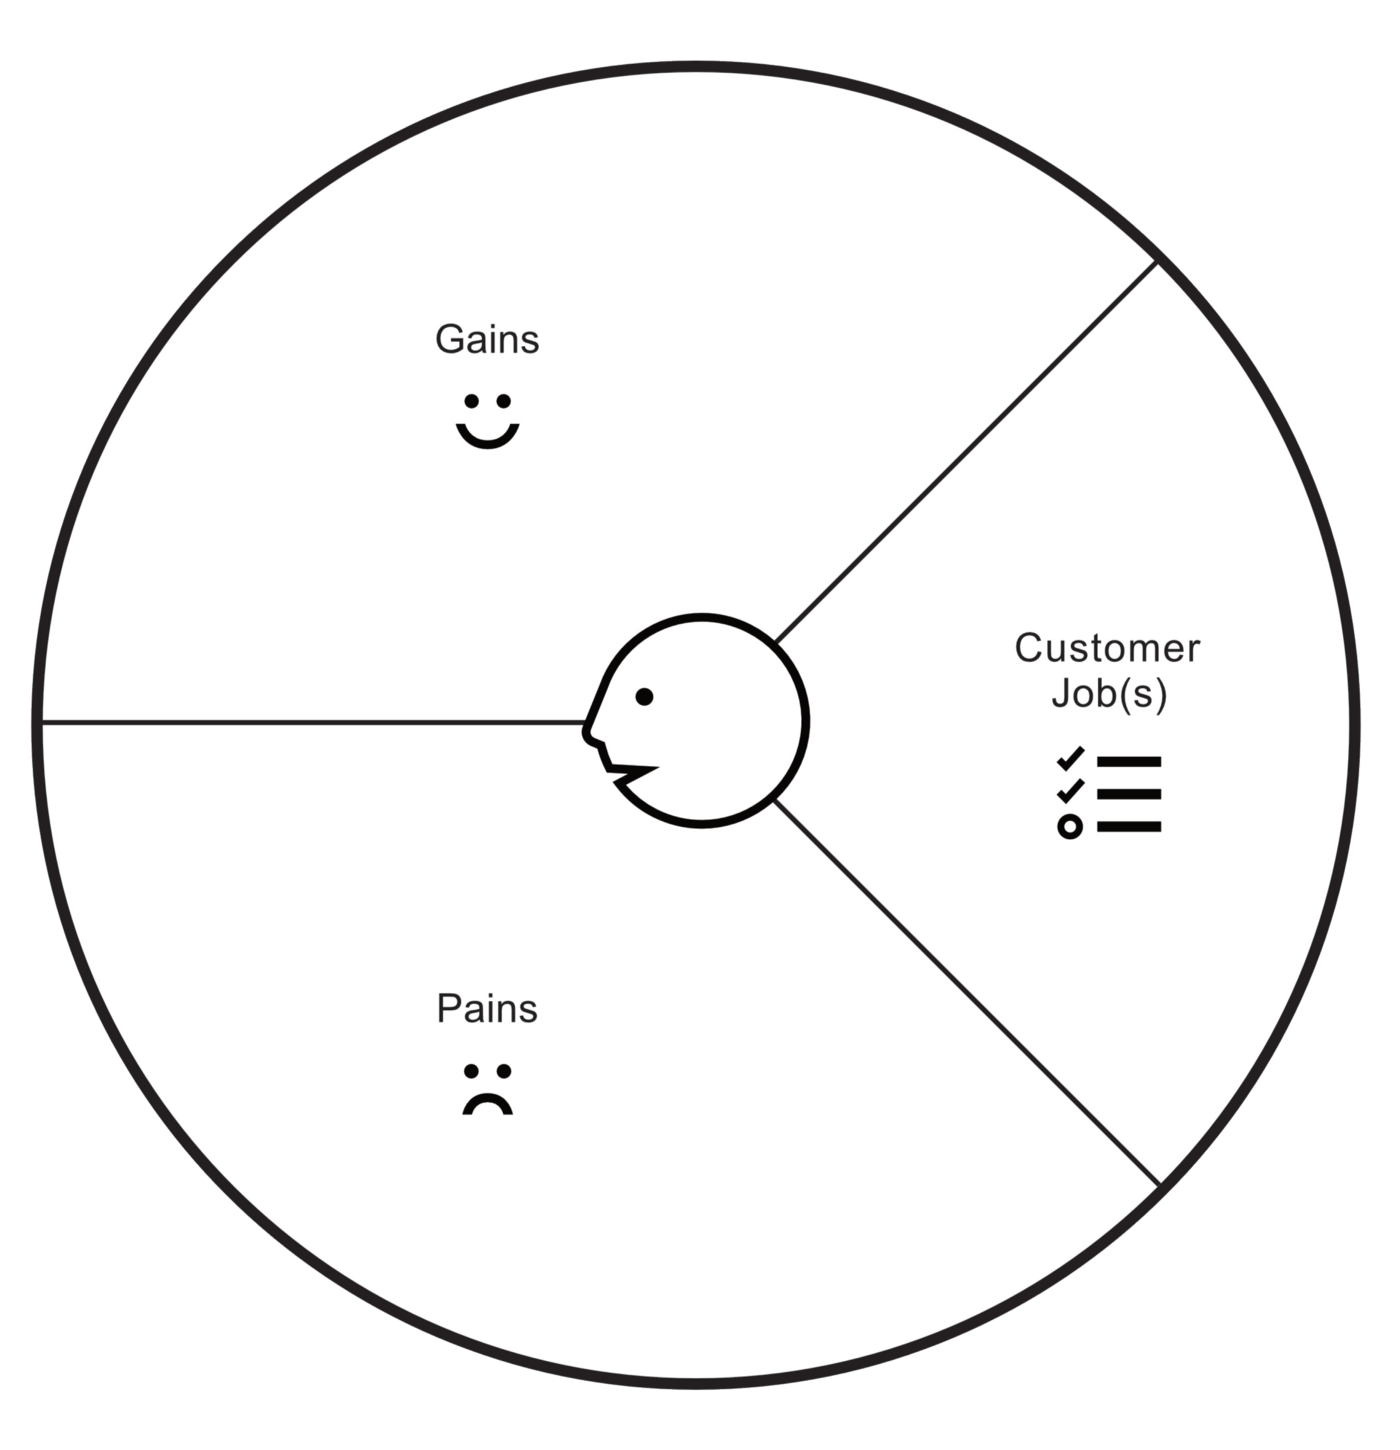 """Profile canvas. A circle with the right section showing """"Customer Jobs"""", the bottom section shows """"Pains"""", and the top section shows """"Gains""""."""